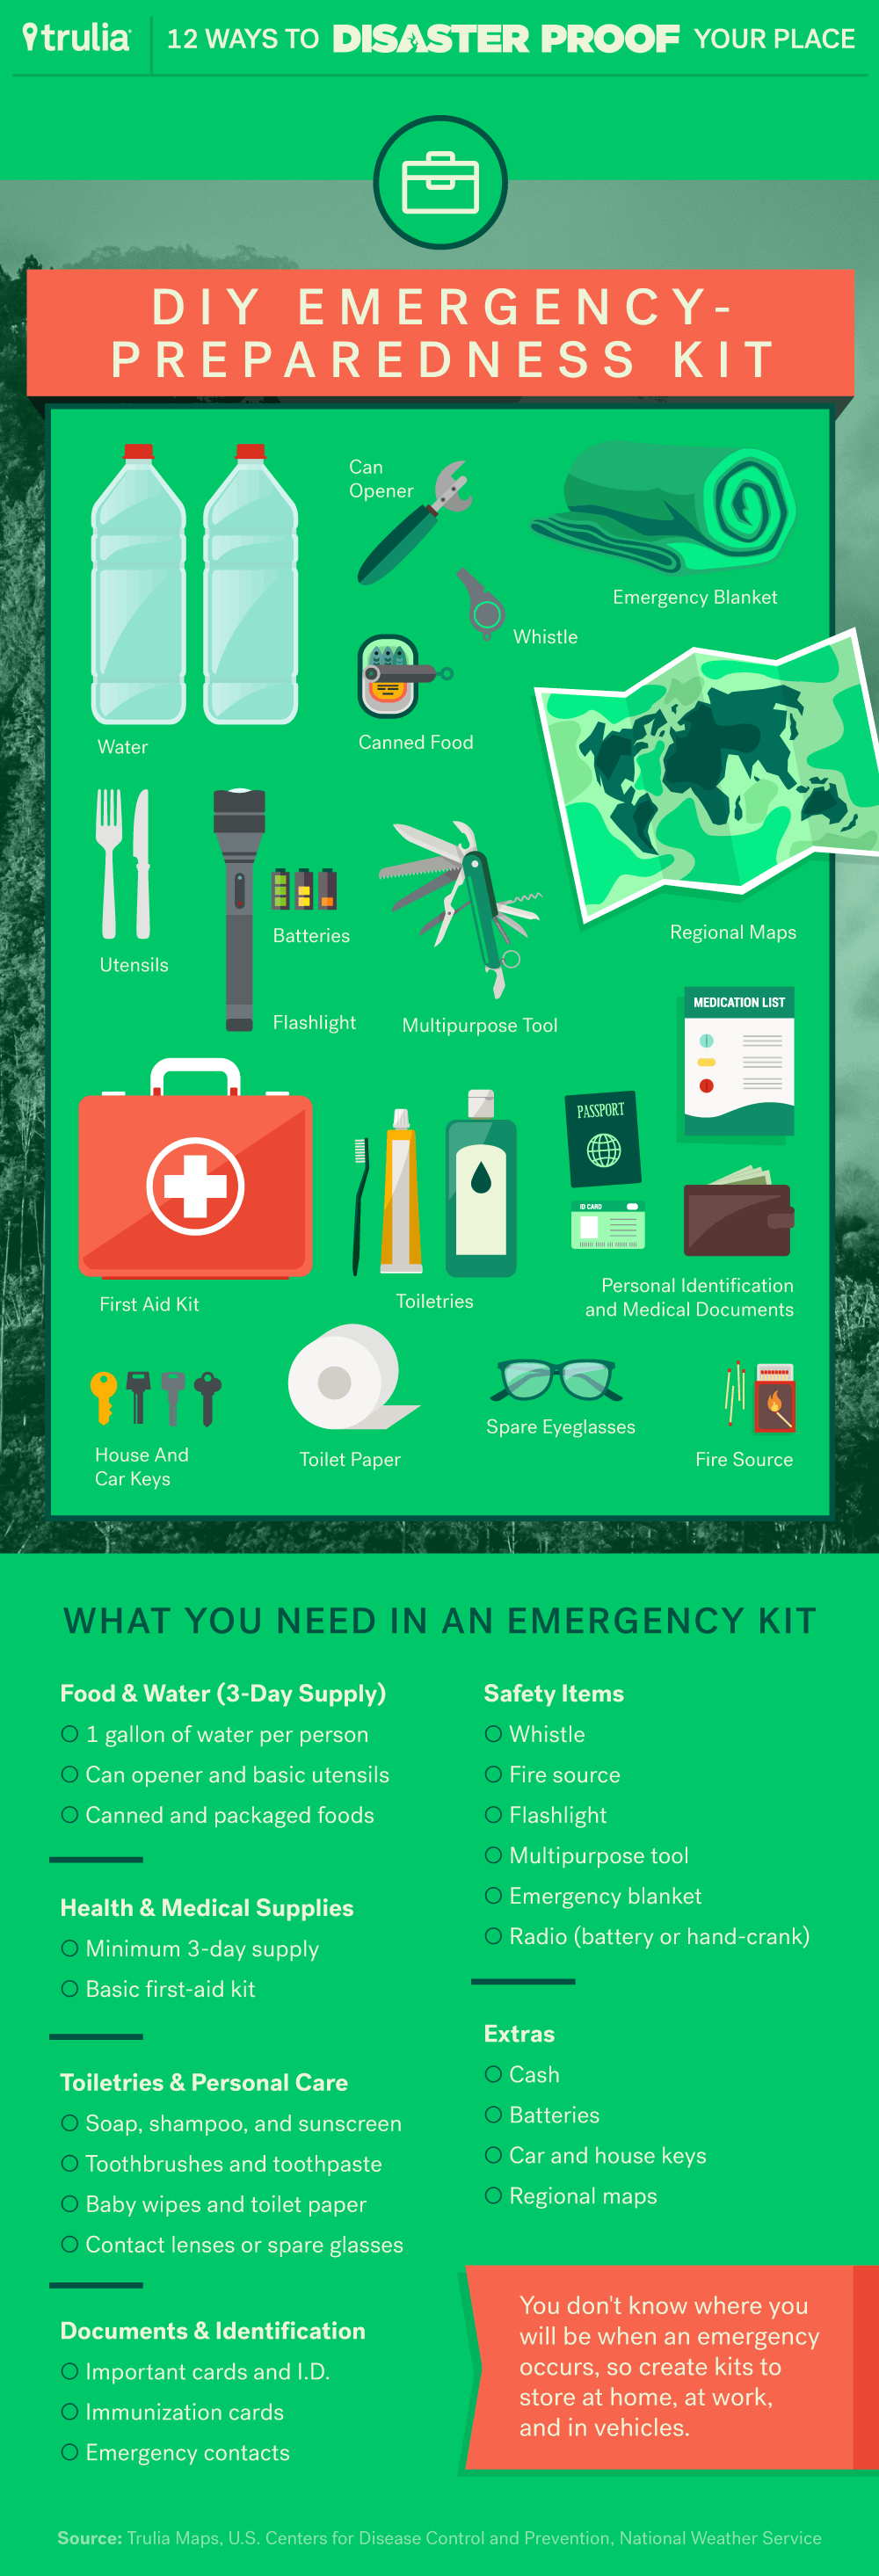 ways to prepare home for natural disaster